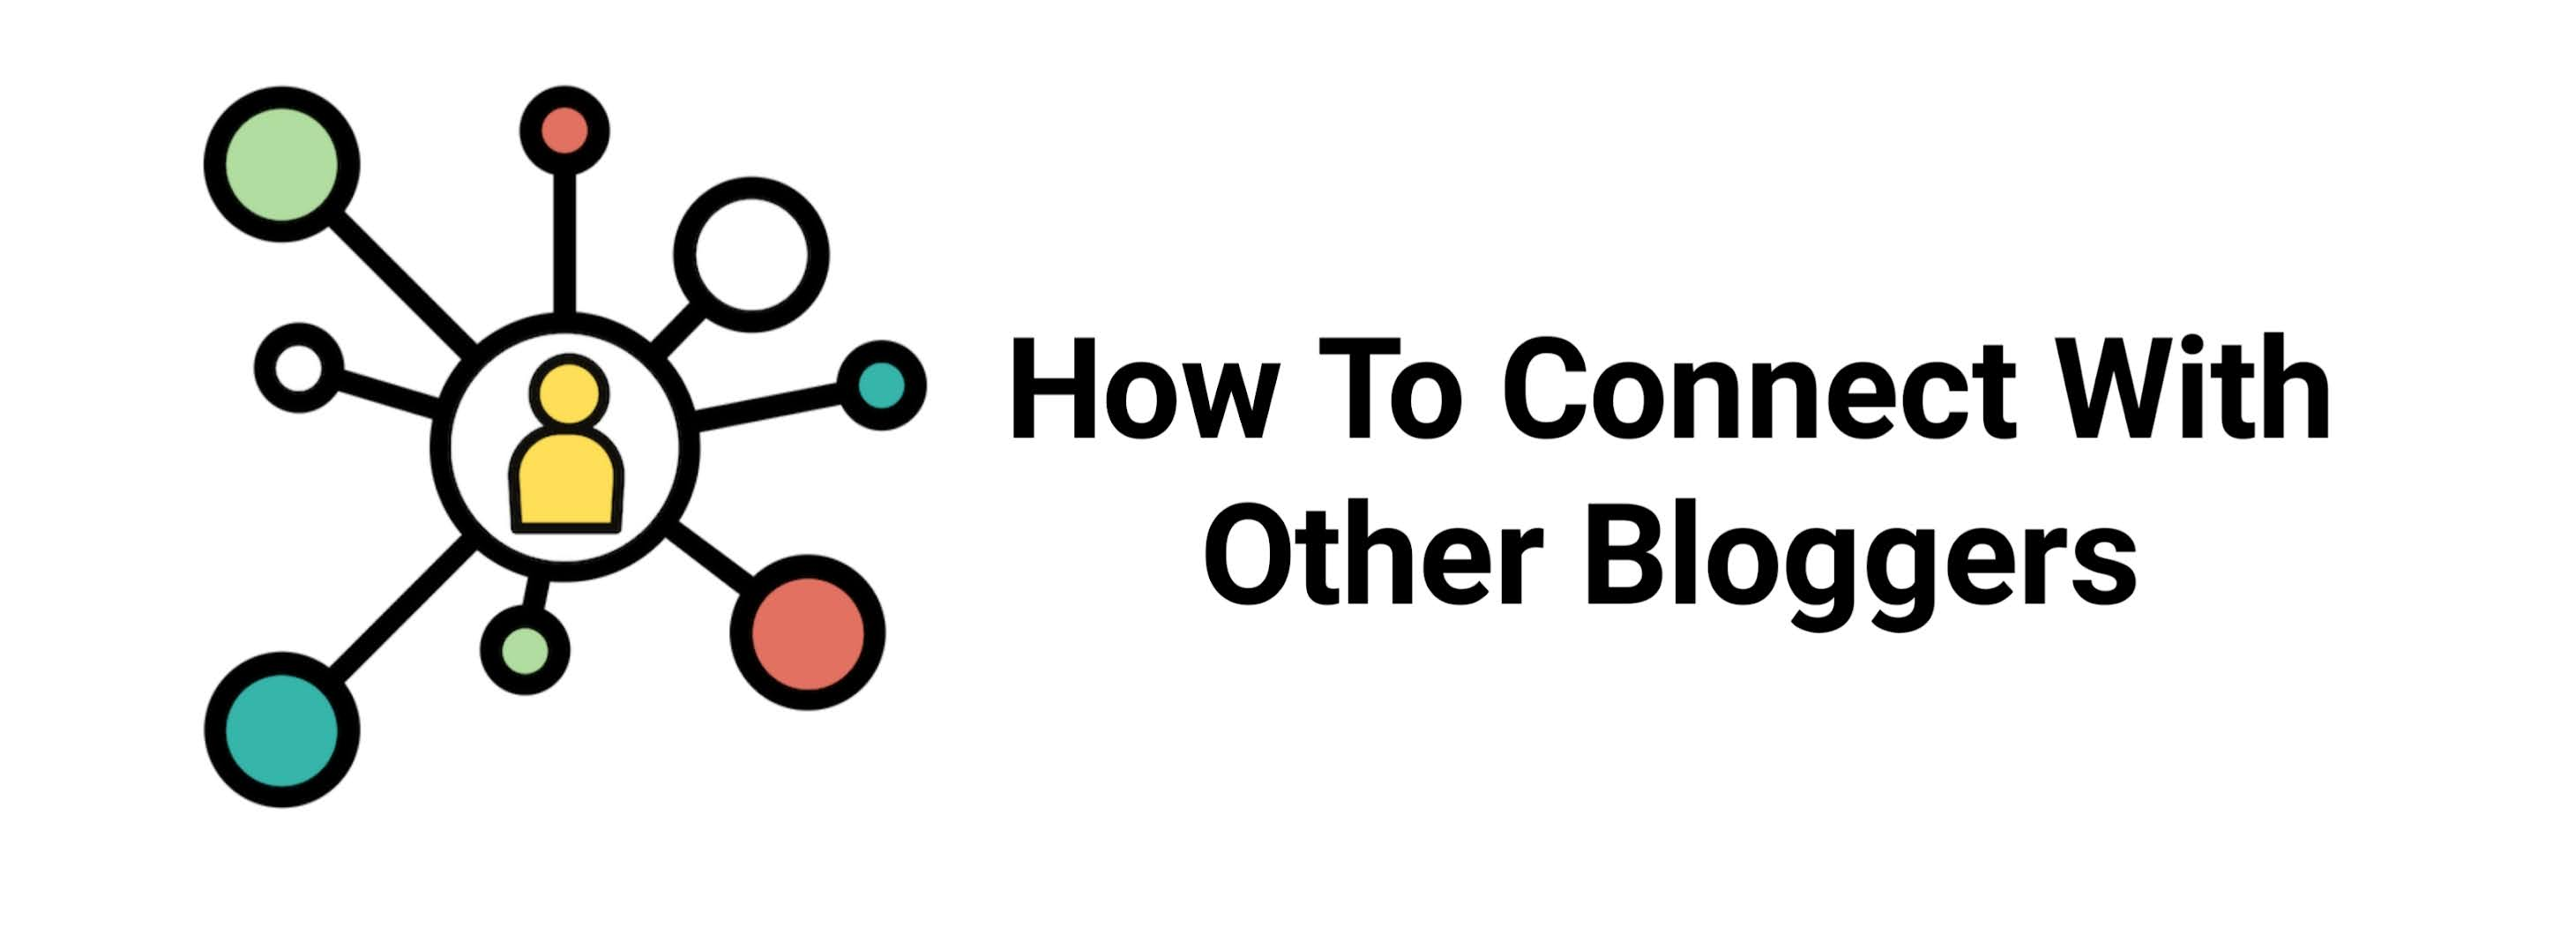 How To Connect With Other Bloggers